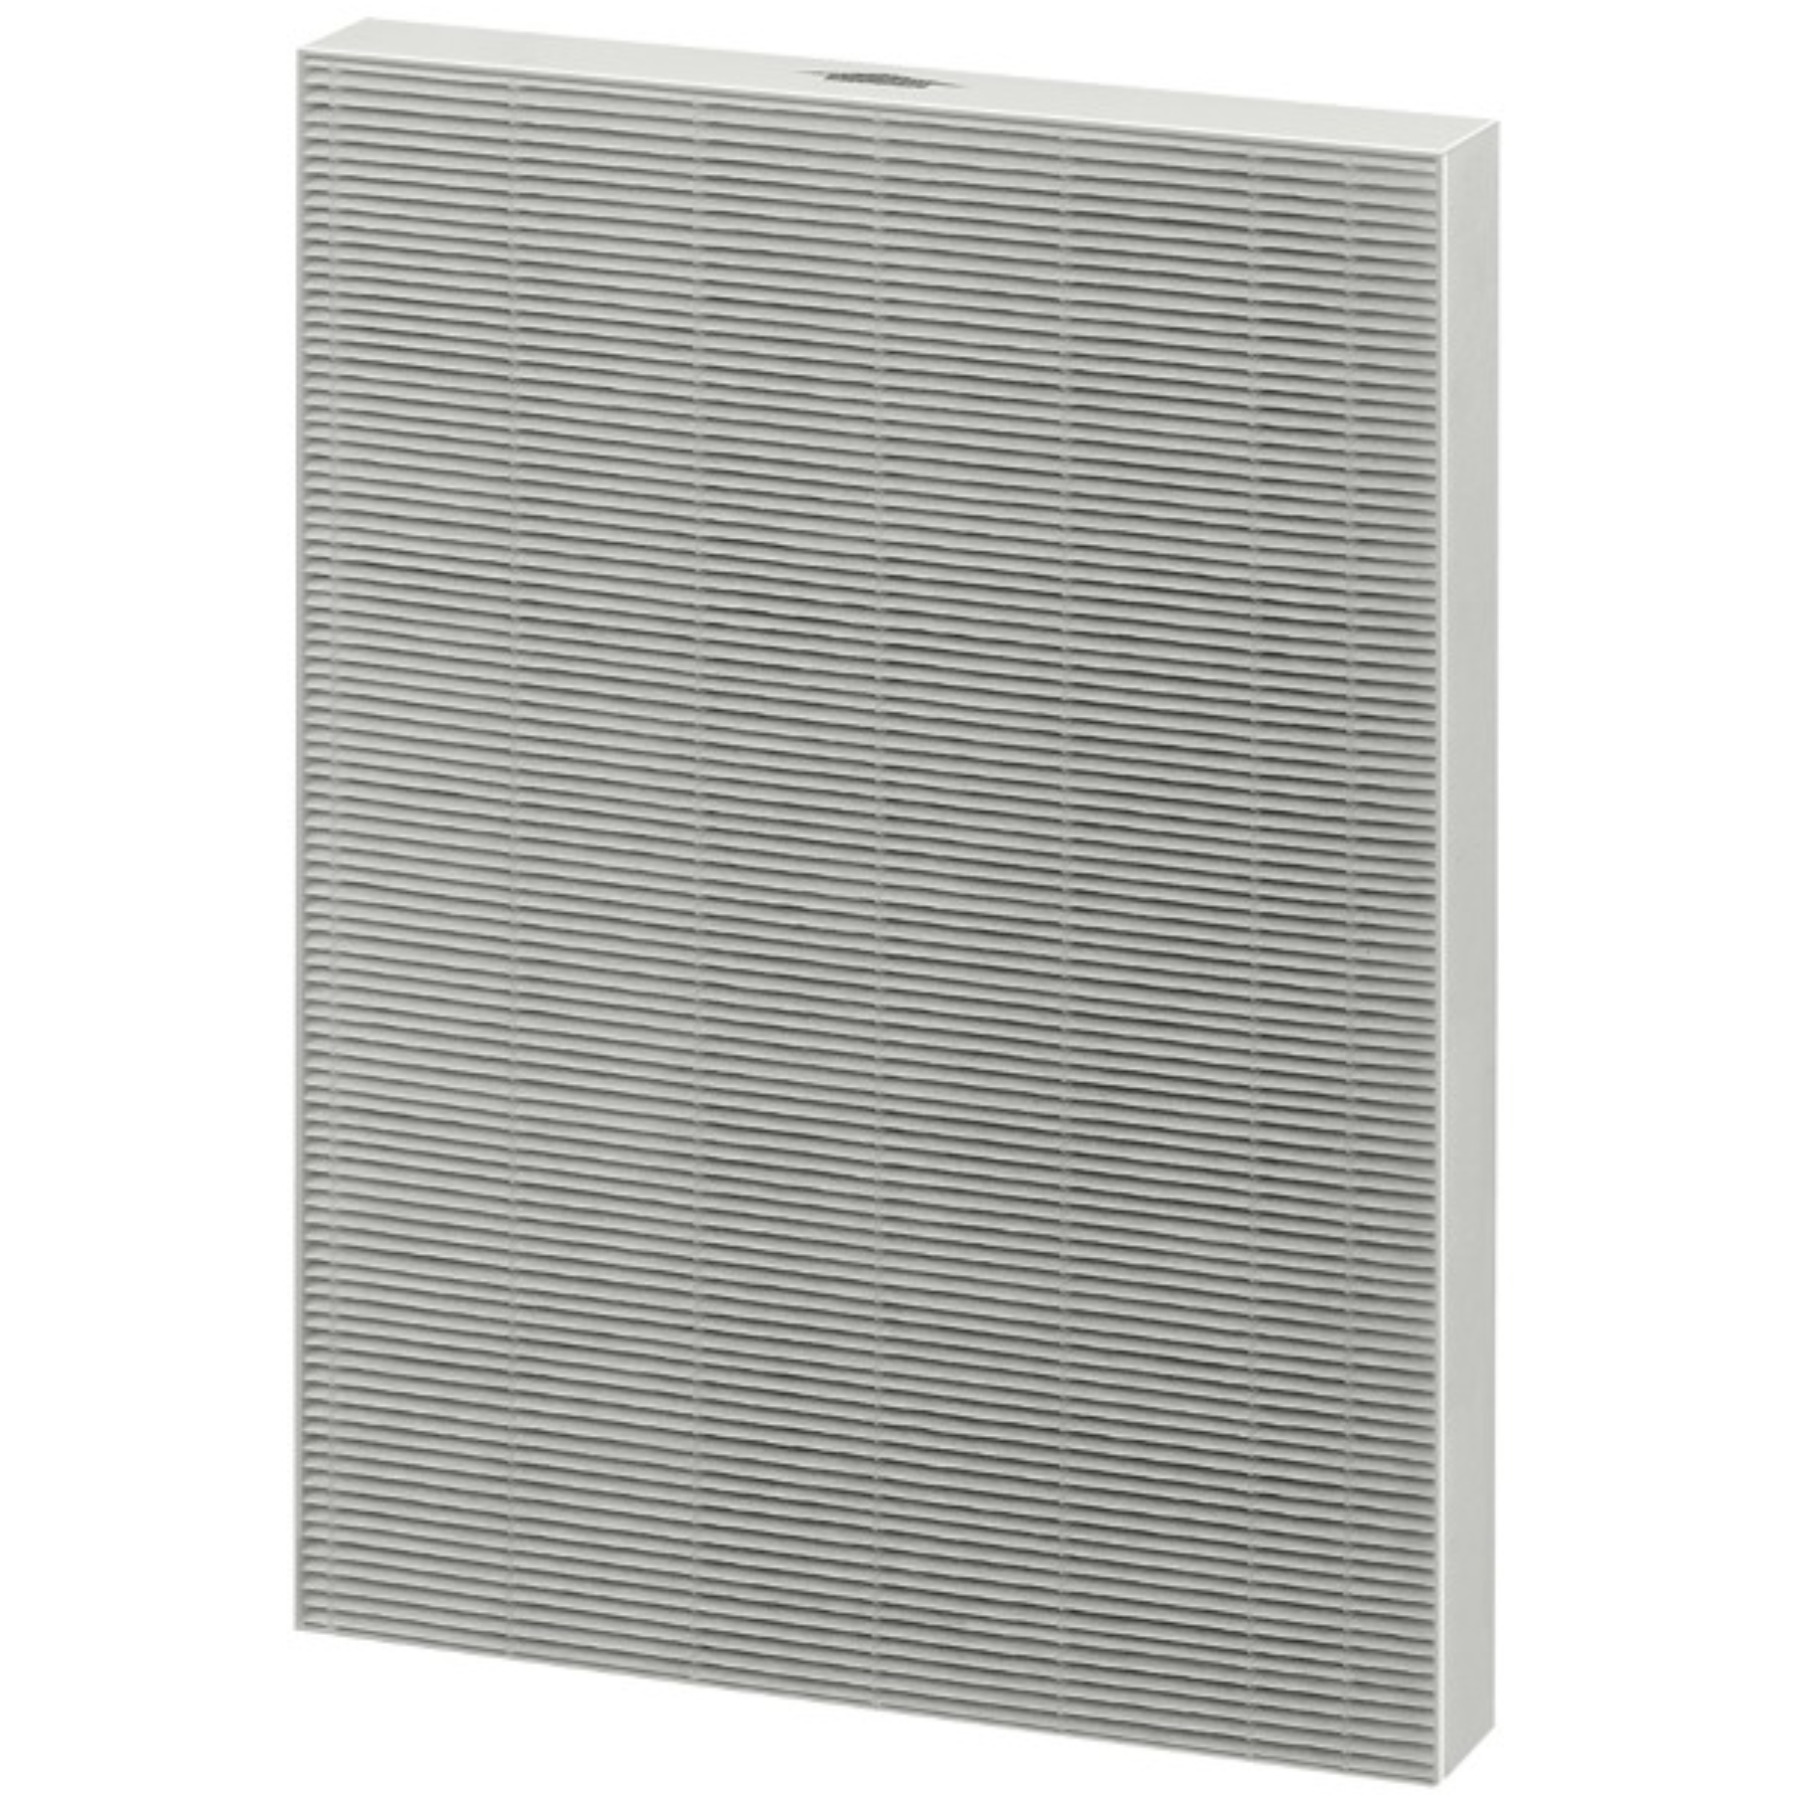 Fellowes True Hepa Filter With Aerasafe™ Antimicrobial Treatment 1767875